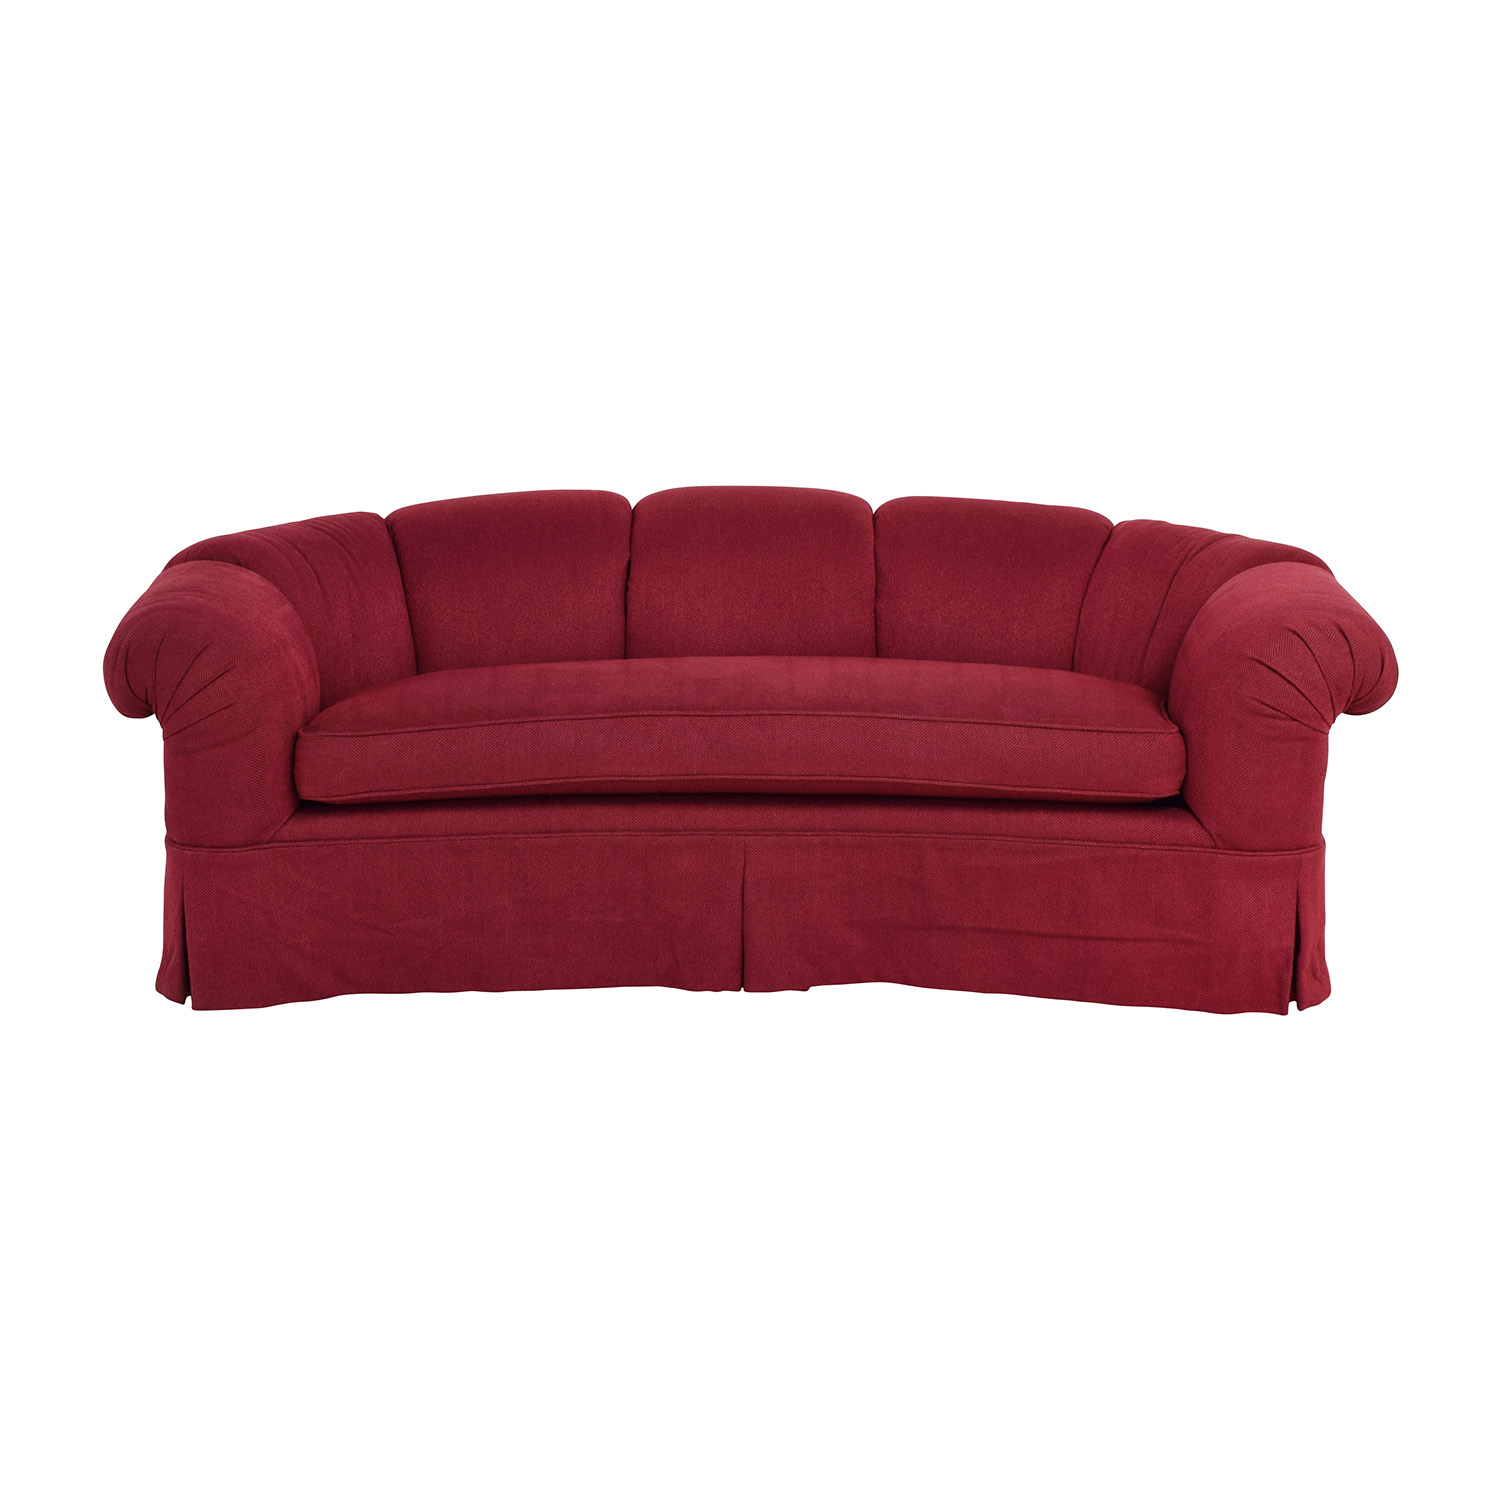 Magnificent 84 Off Baker Furniture Baker Custom Burgundy Curved Couch Sofas Unemploymentrelief Wooden Chair Designs For Living Room Unemploymentrelieforg